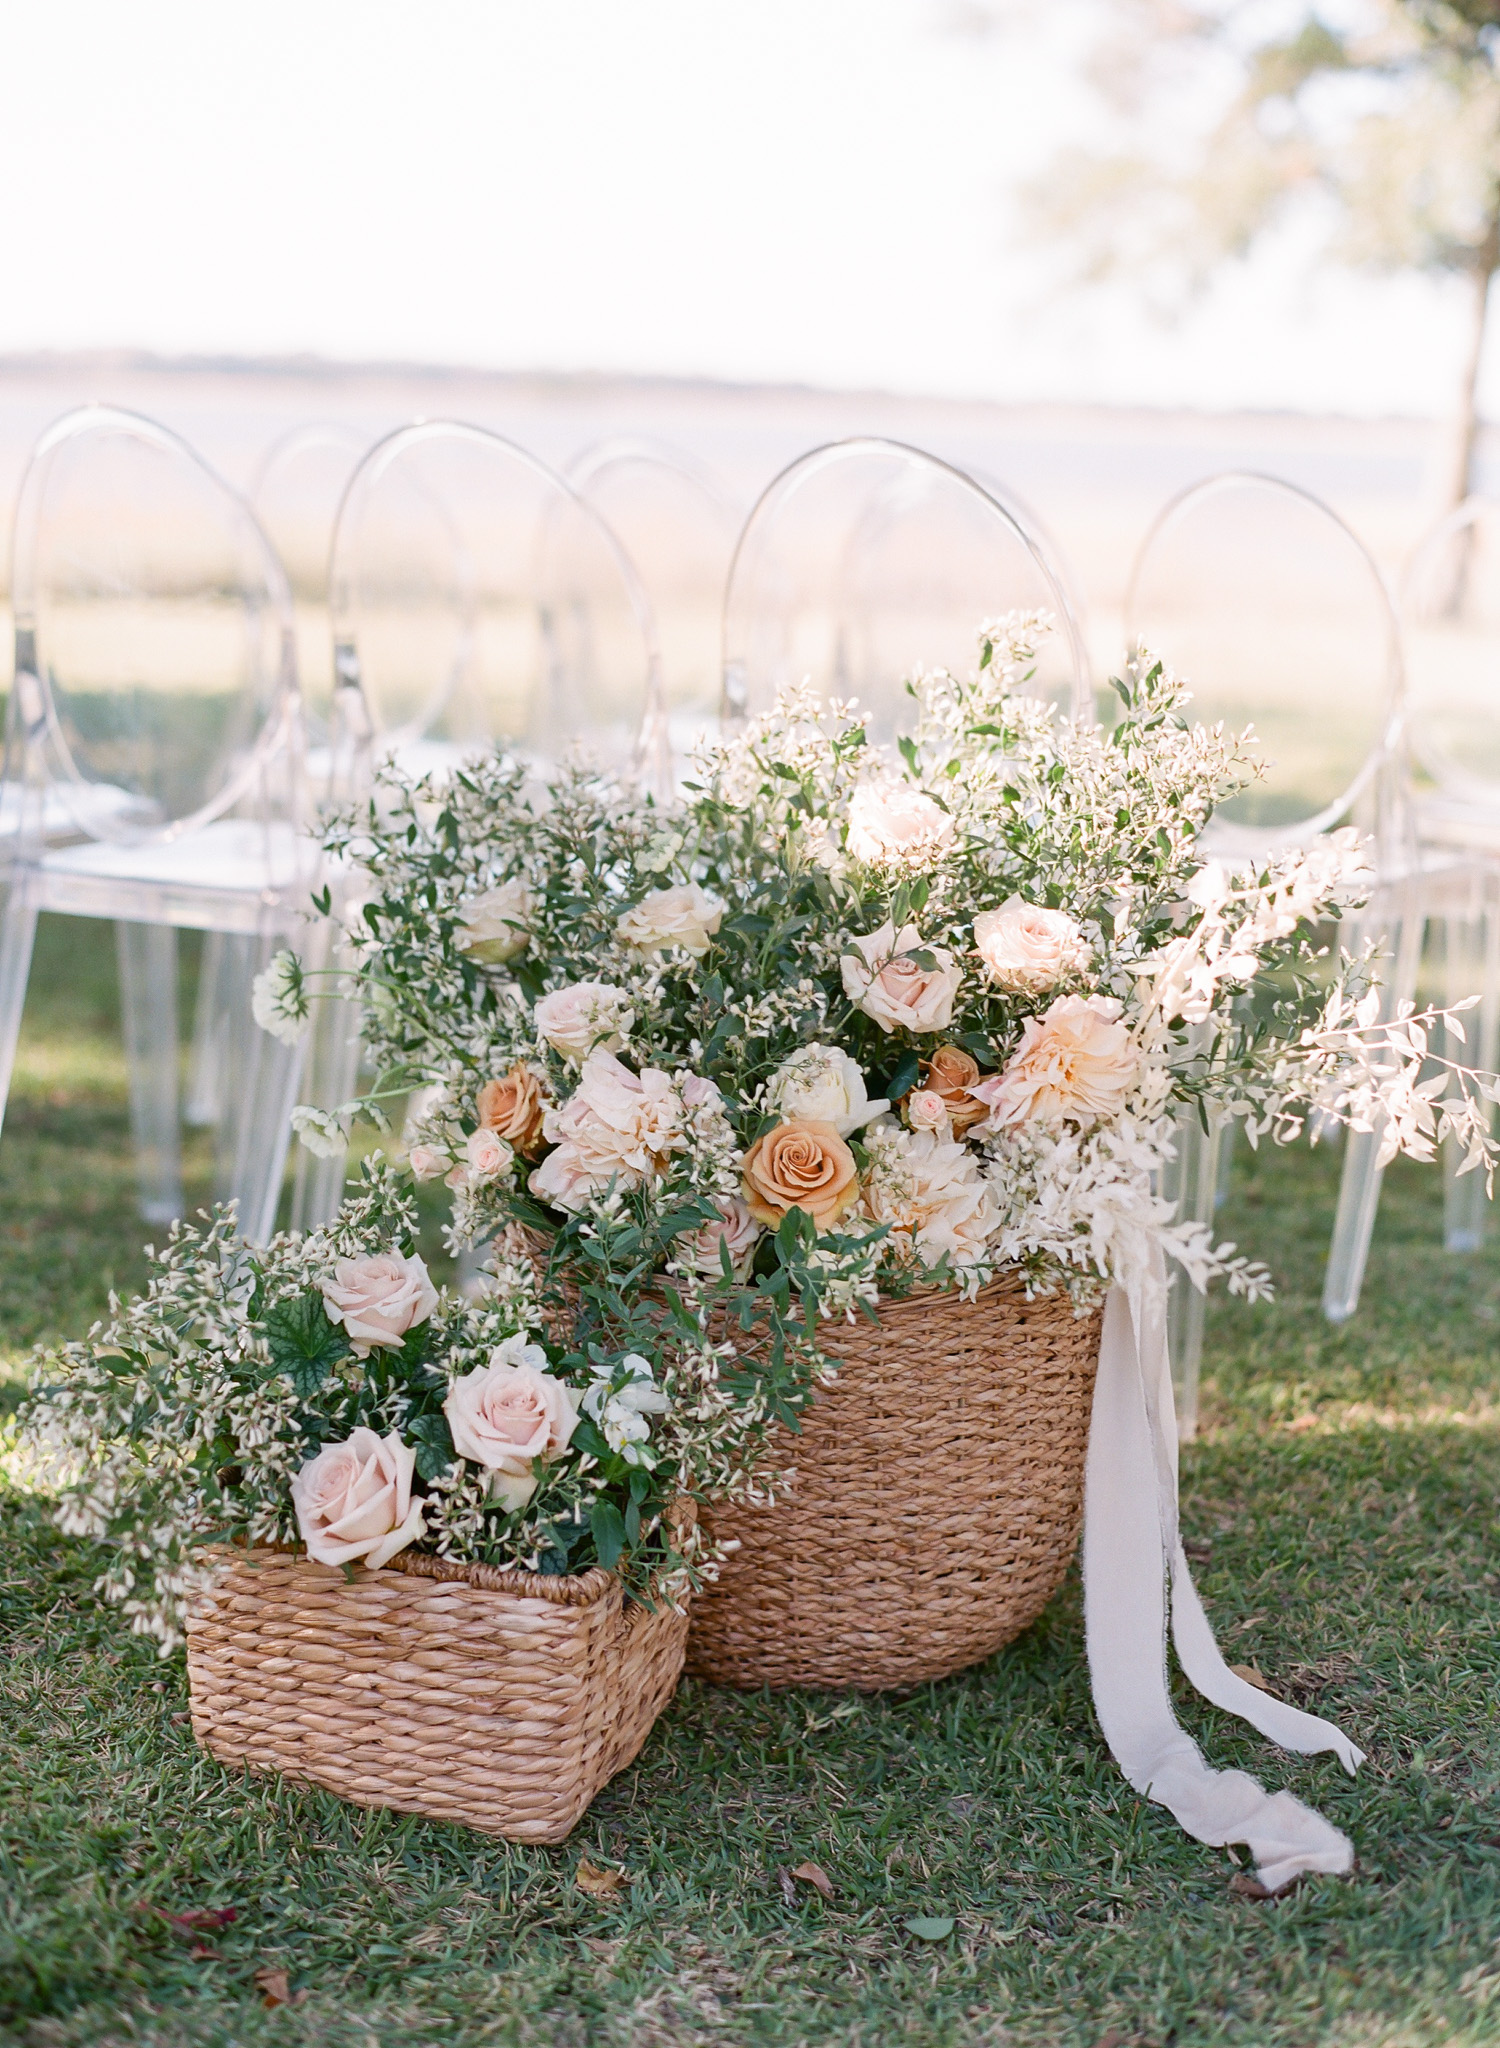 Wedding-Aisle-Flowers.jpg